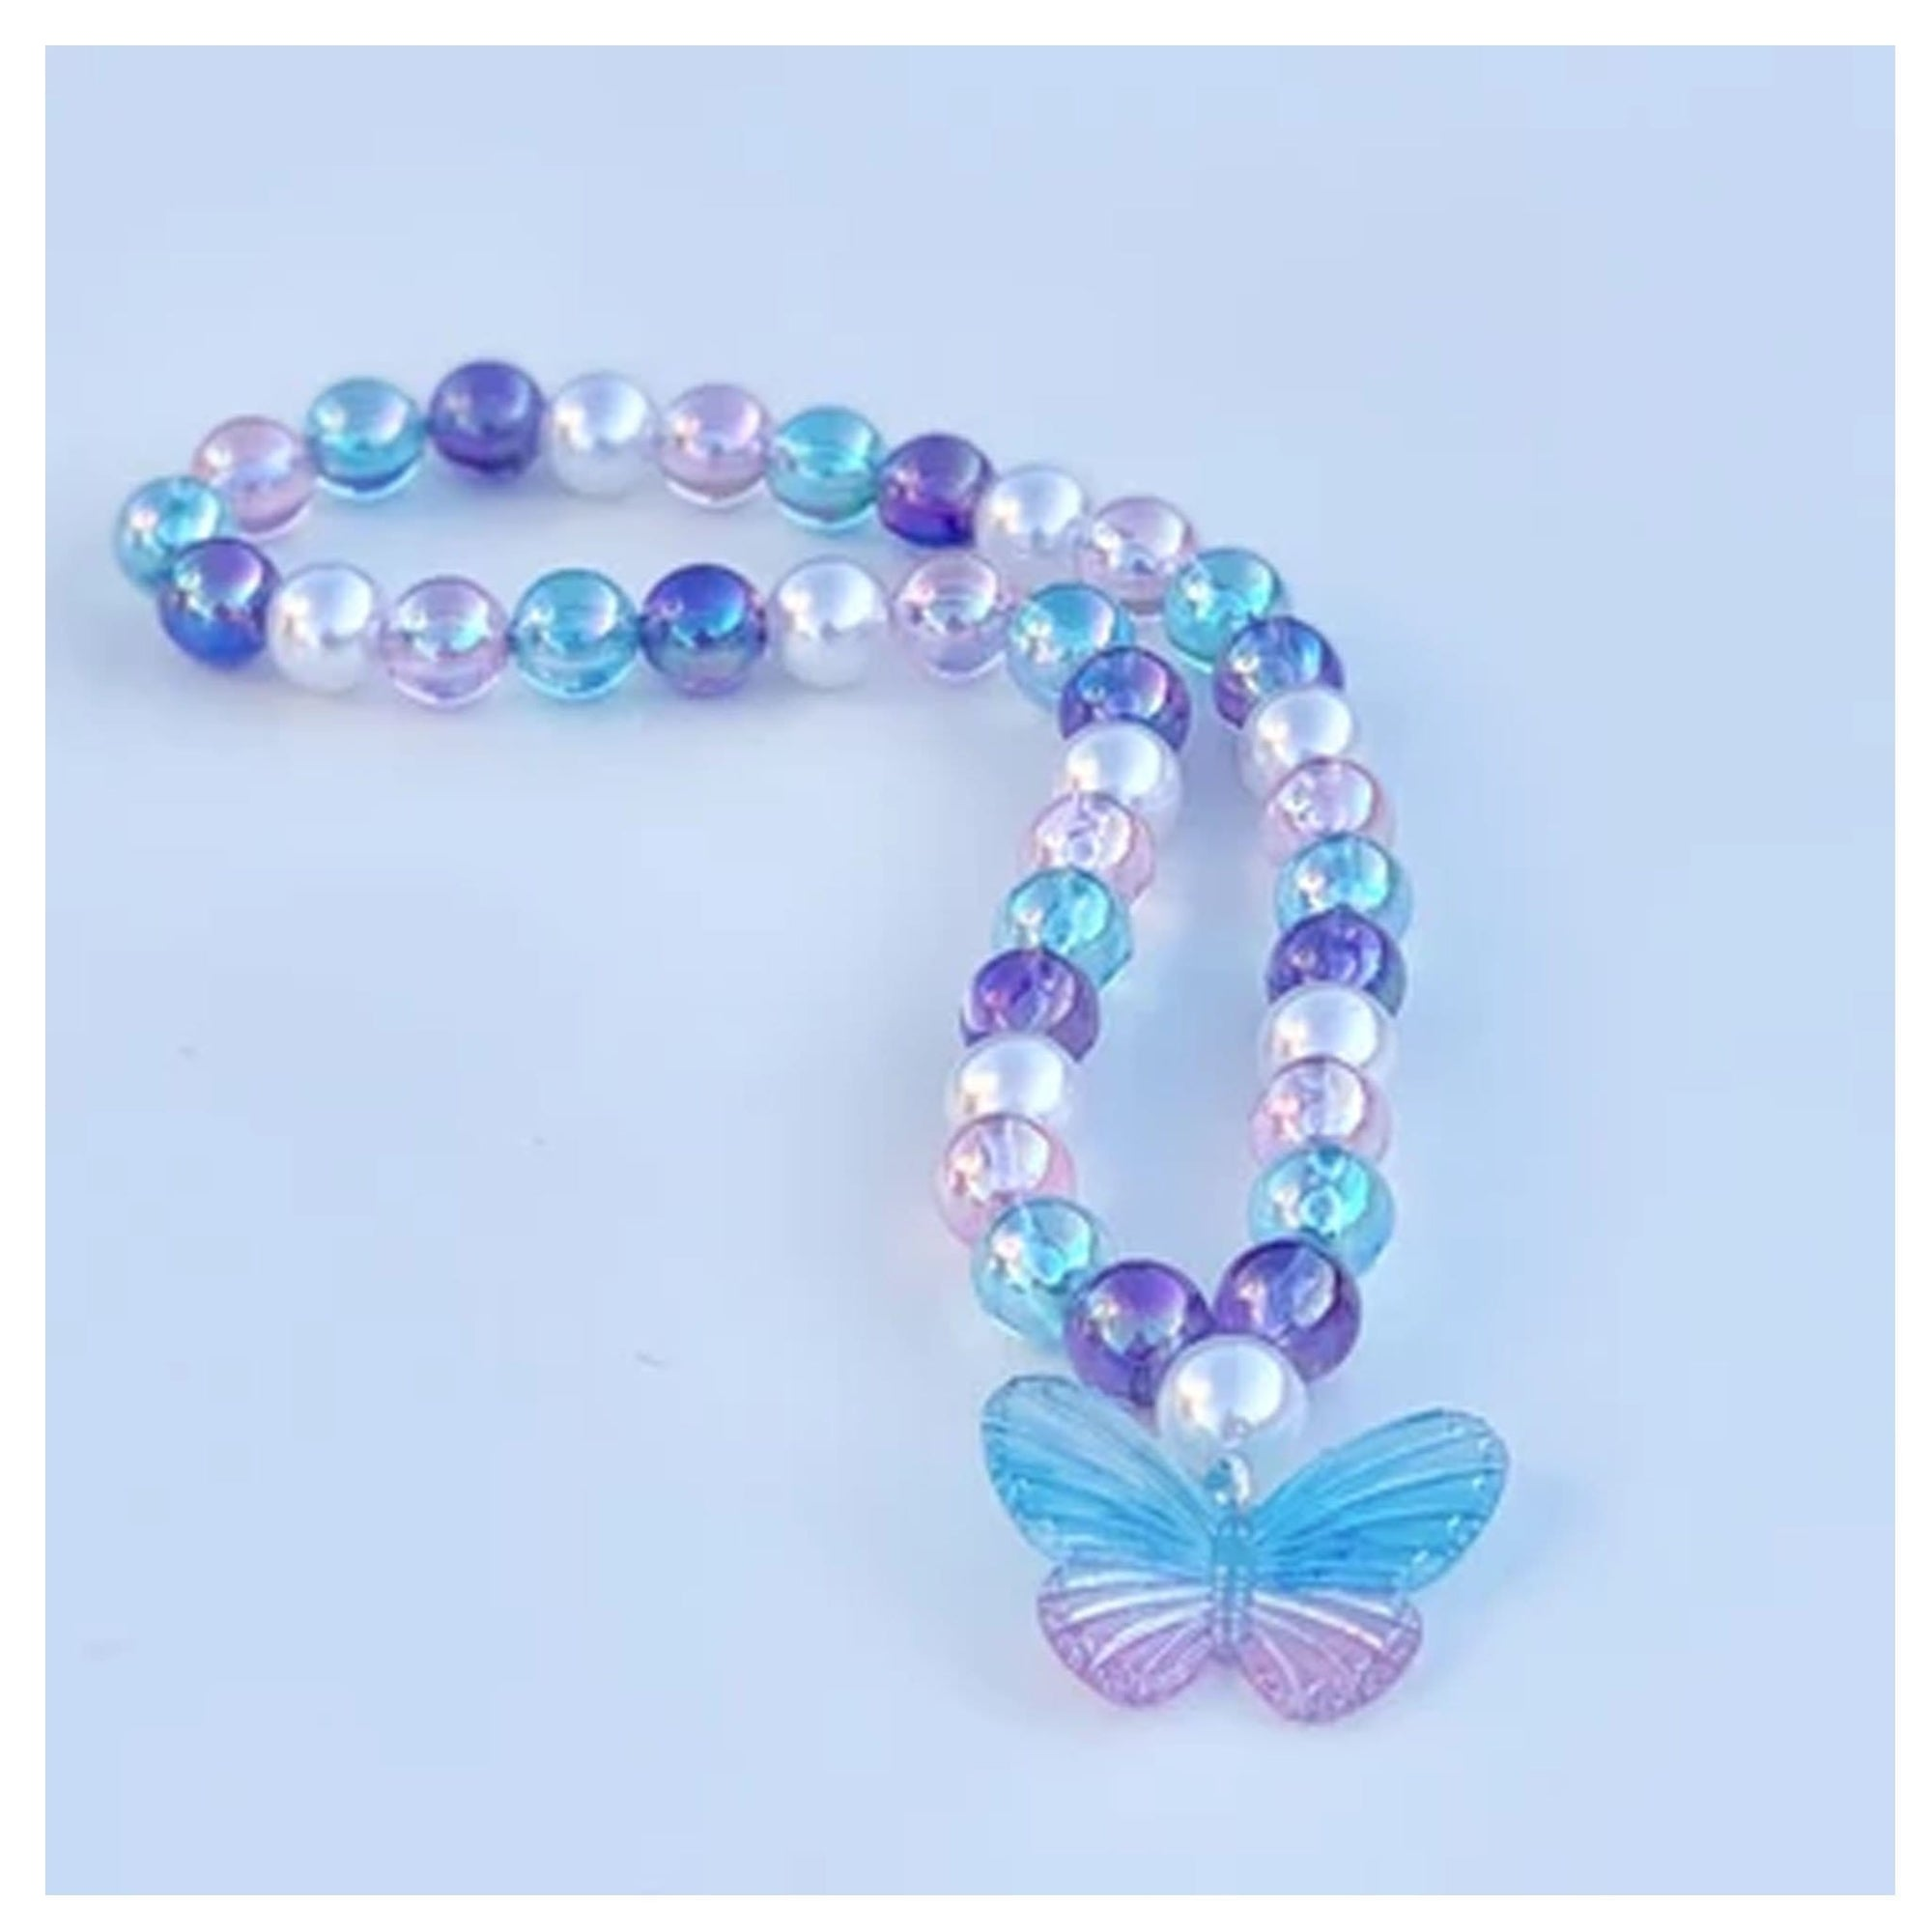 Sweet as Sugar Jellewery Beaded Butterfly Necklace